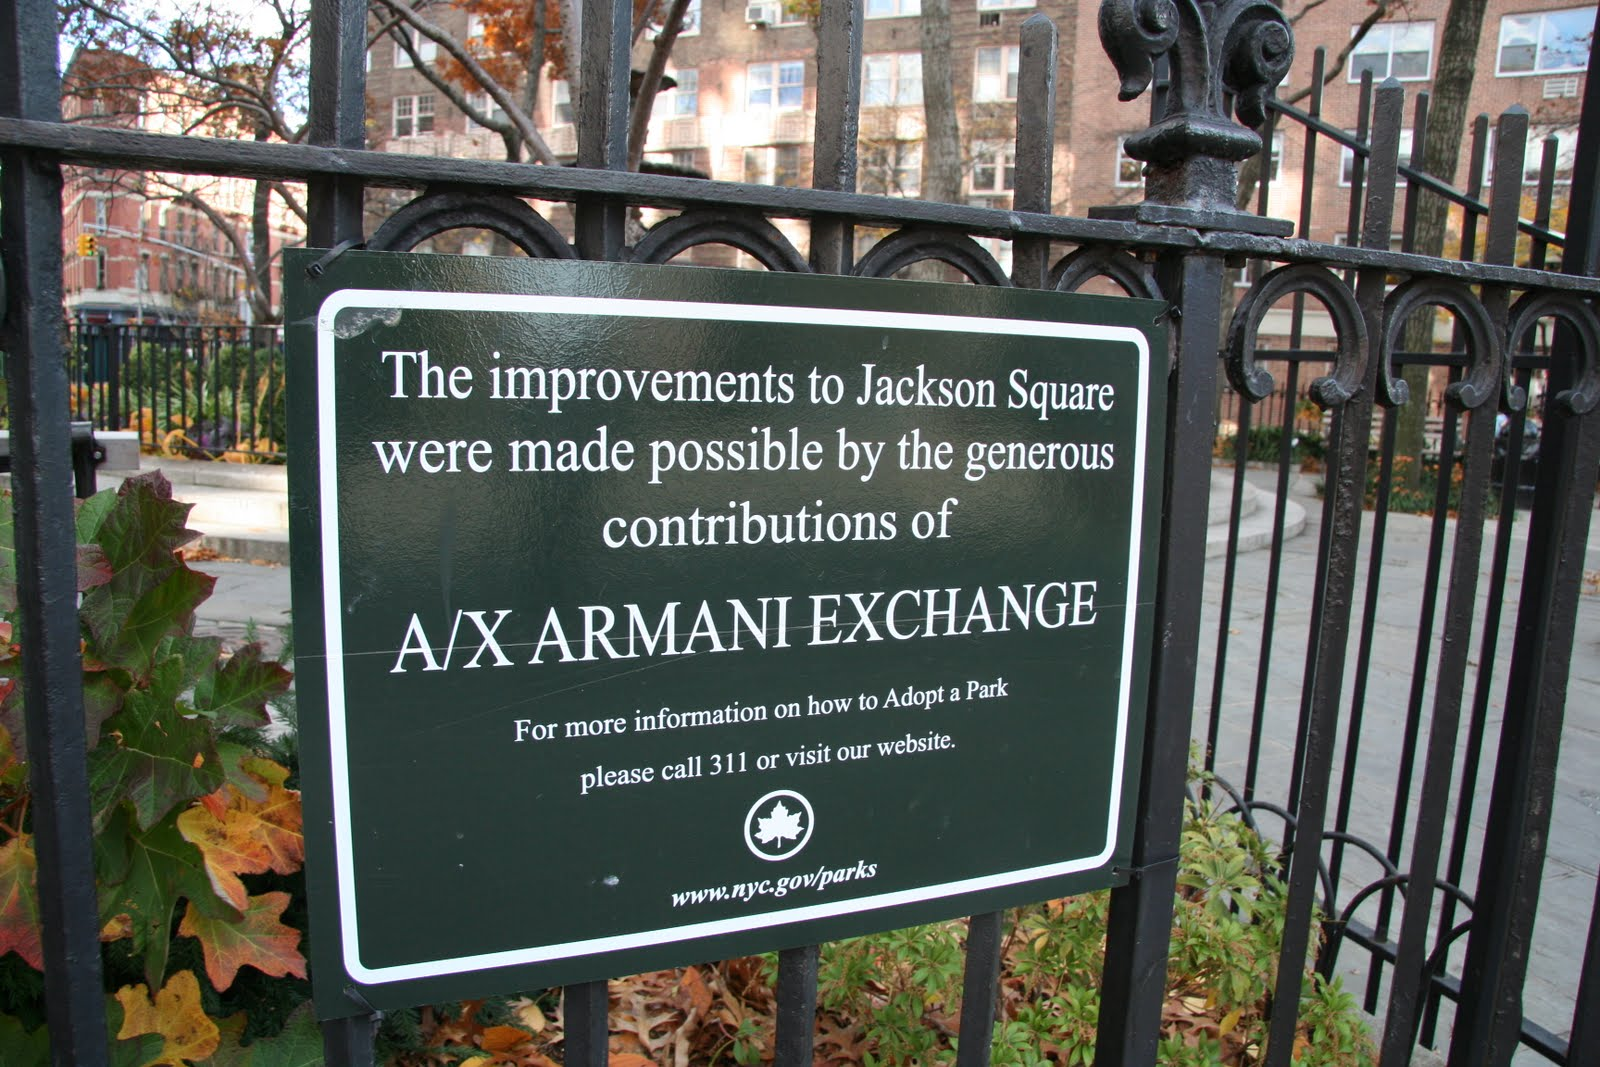 A Walk in the Park: Desperate Park Naming Rights Plan Suspended